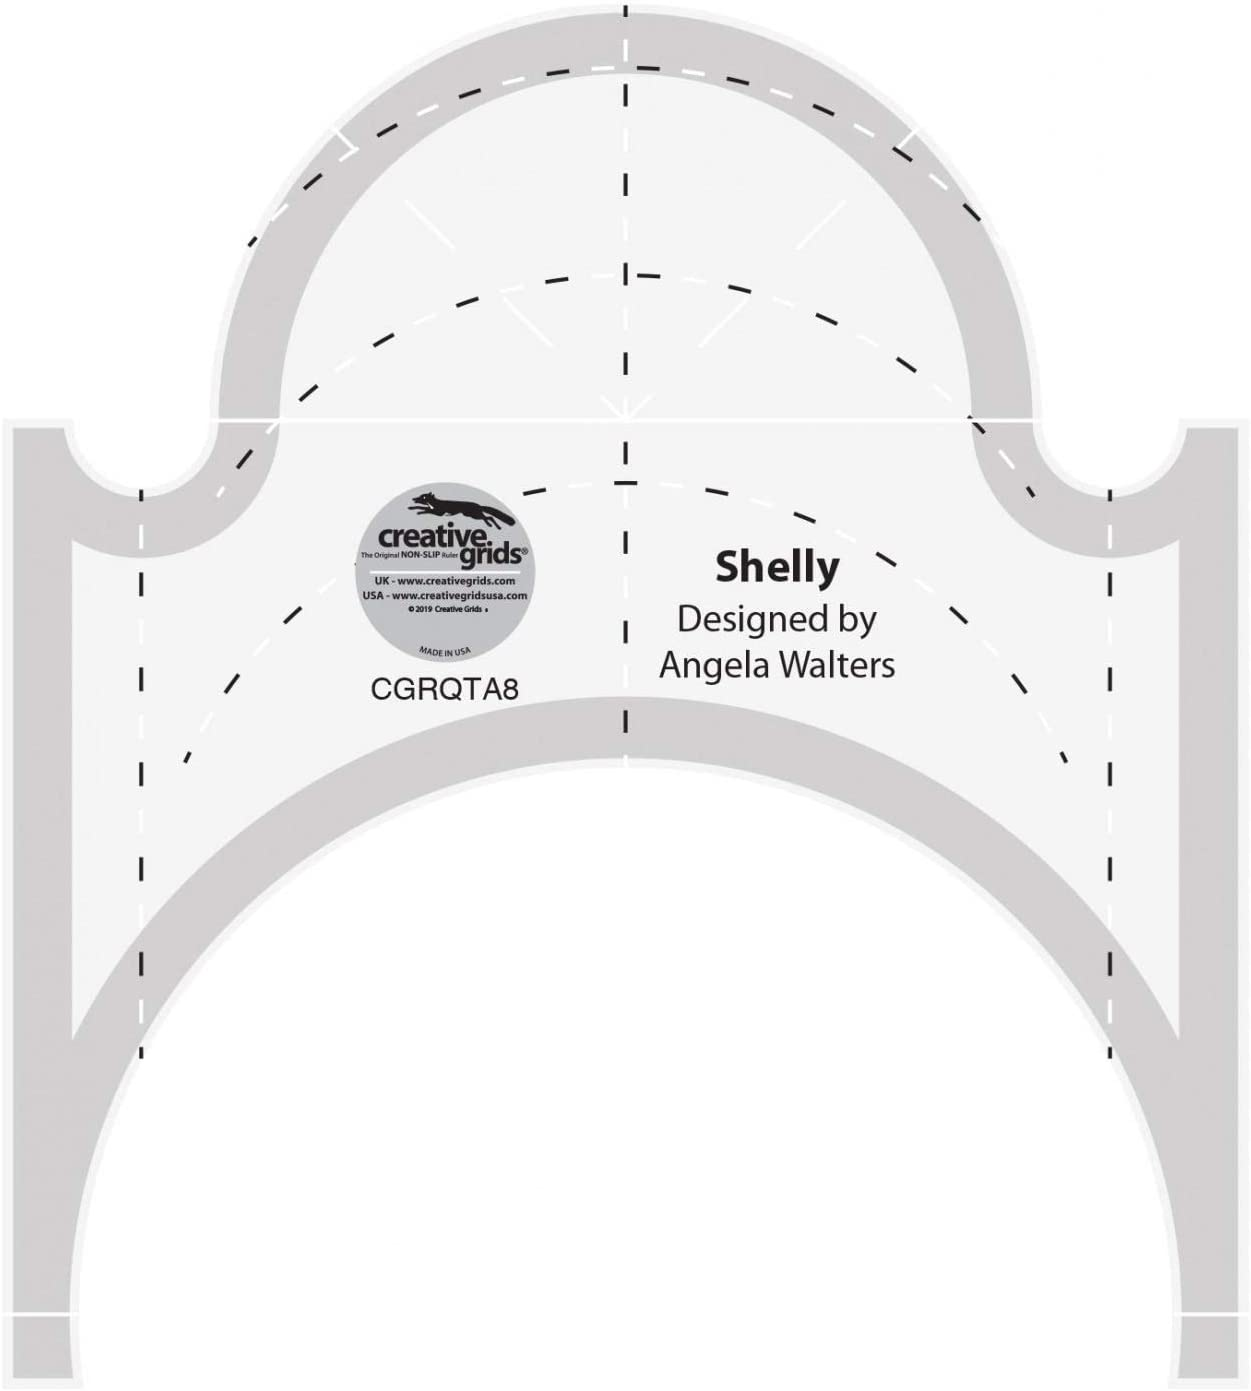 Creative Grids Machine Quilting Tool Ruler Template - Shelly